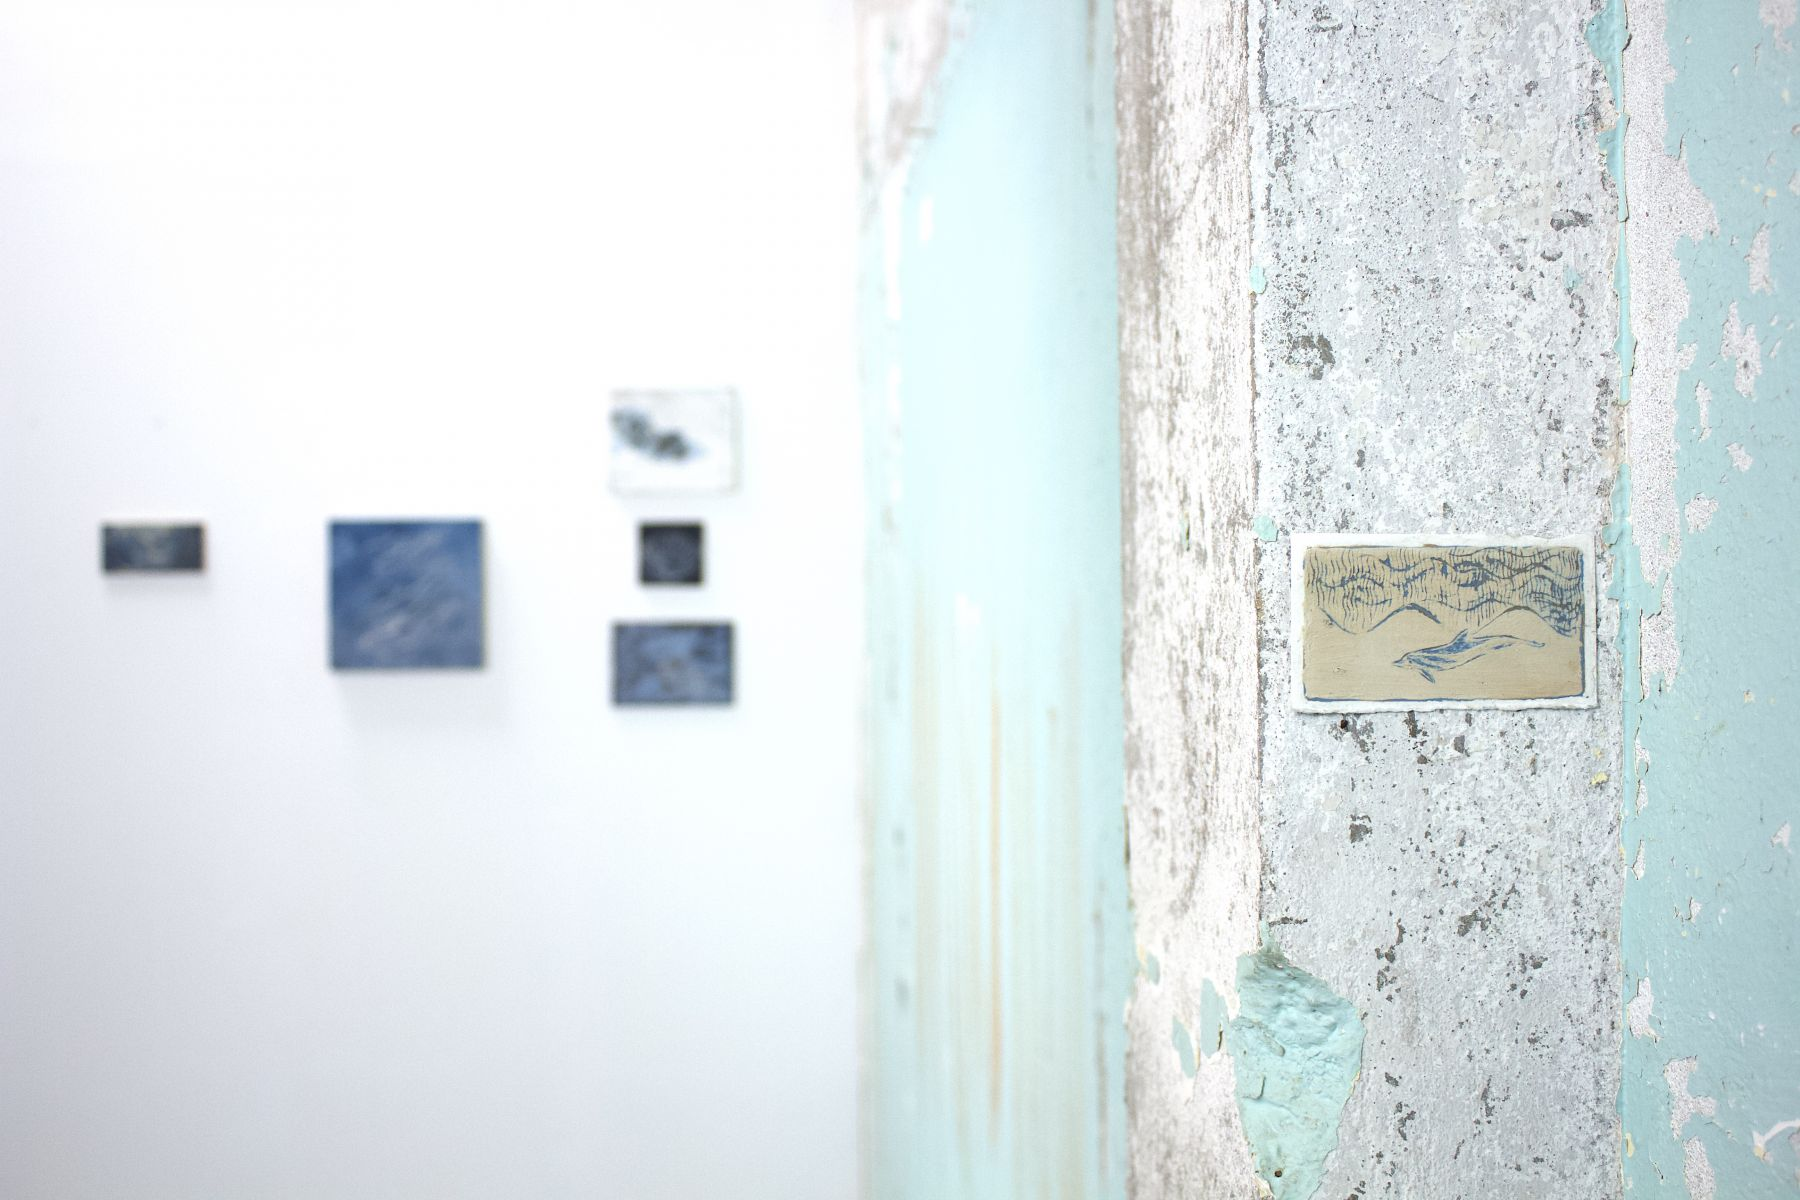 Install Pics small drawing w dolphins